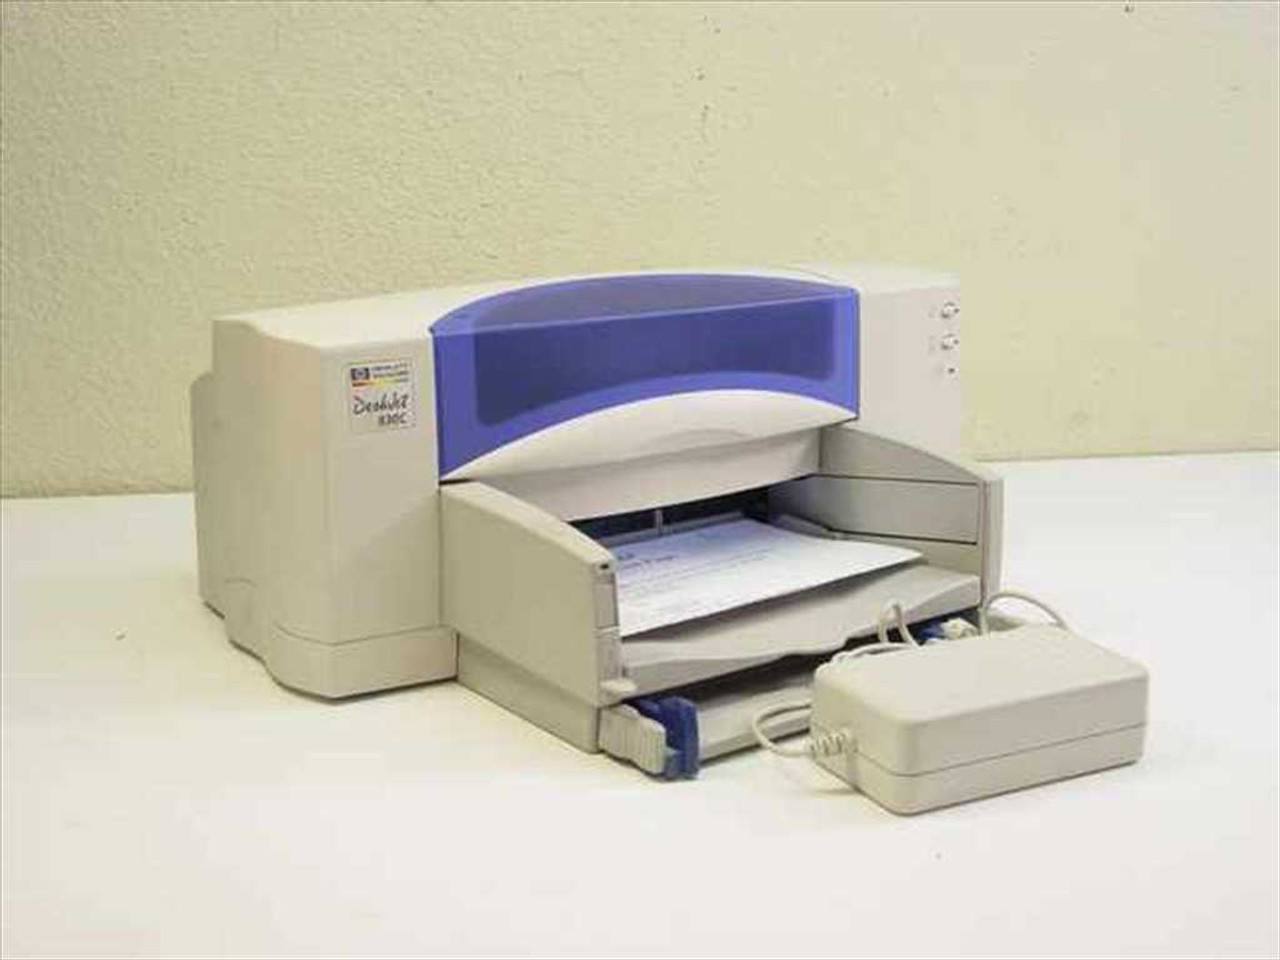 HEWLETT PACKARD HP DESKJET 830C DRIVERS WINDOWS XP